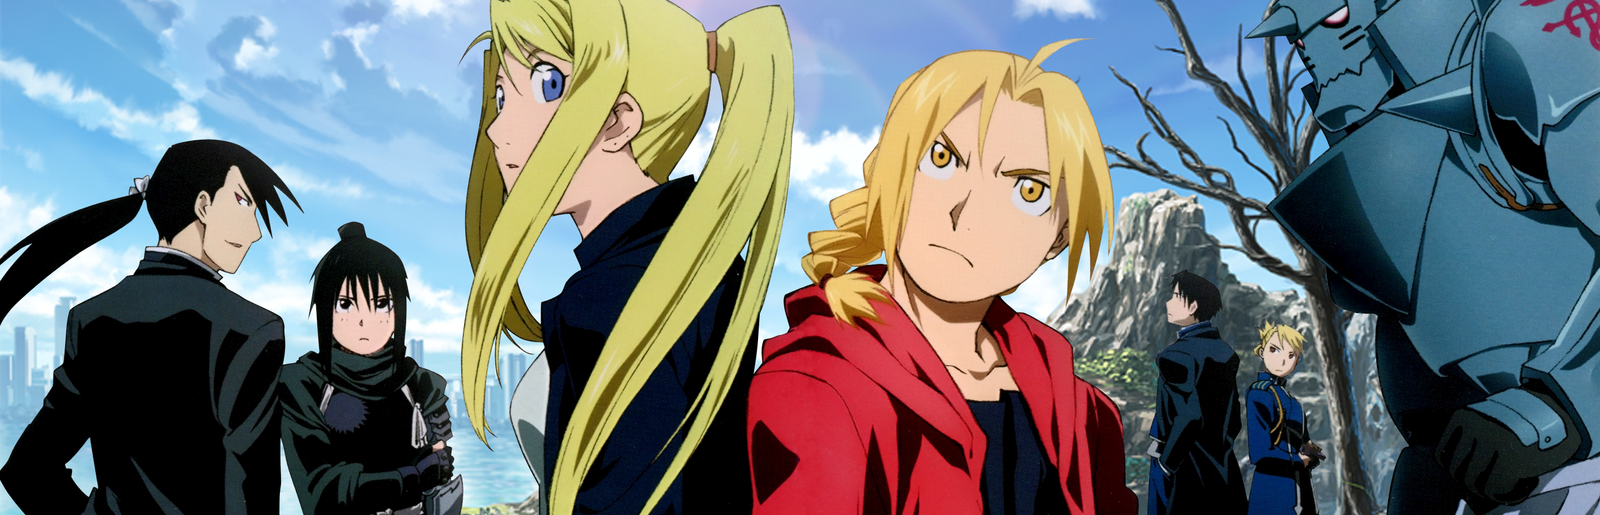 Fullmetal Alchemist: Brotherhood – Rewatch #1